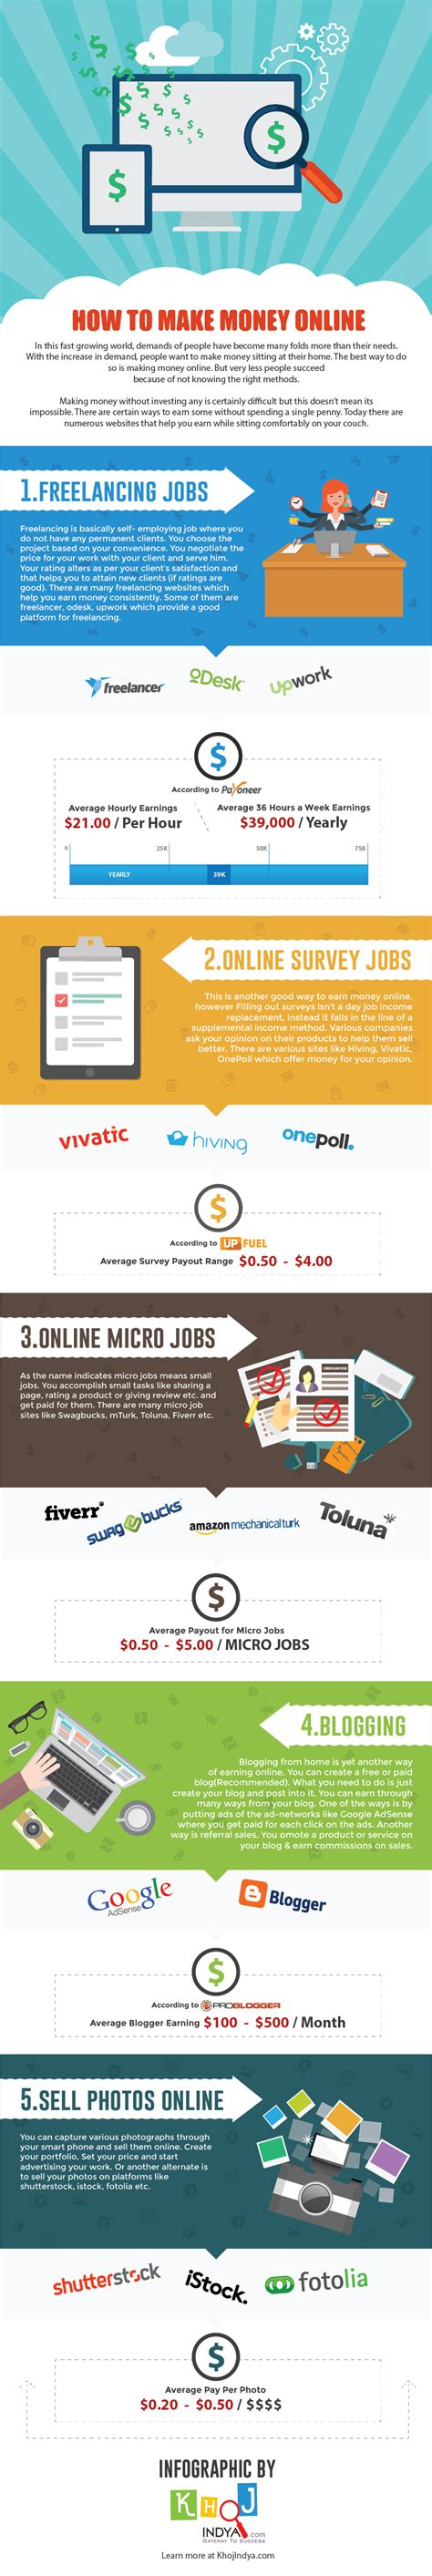 How To Make Money Online As A Graphic Designer - how to make money online infographic digital information world